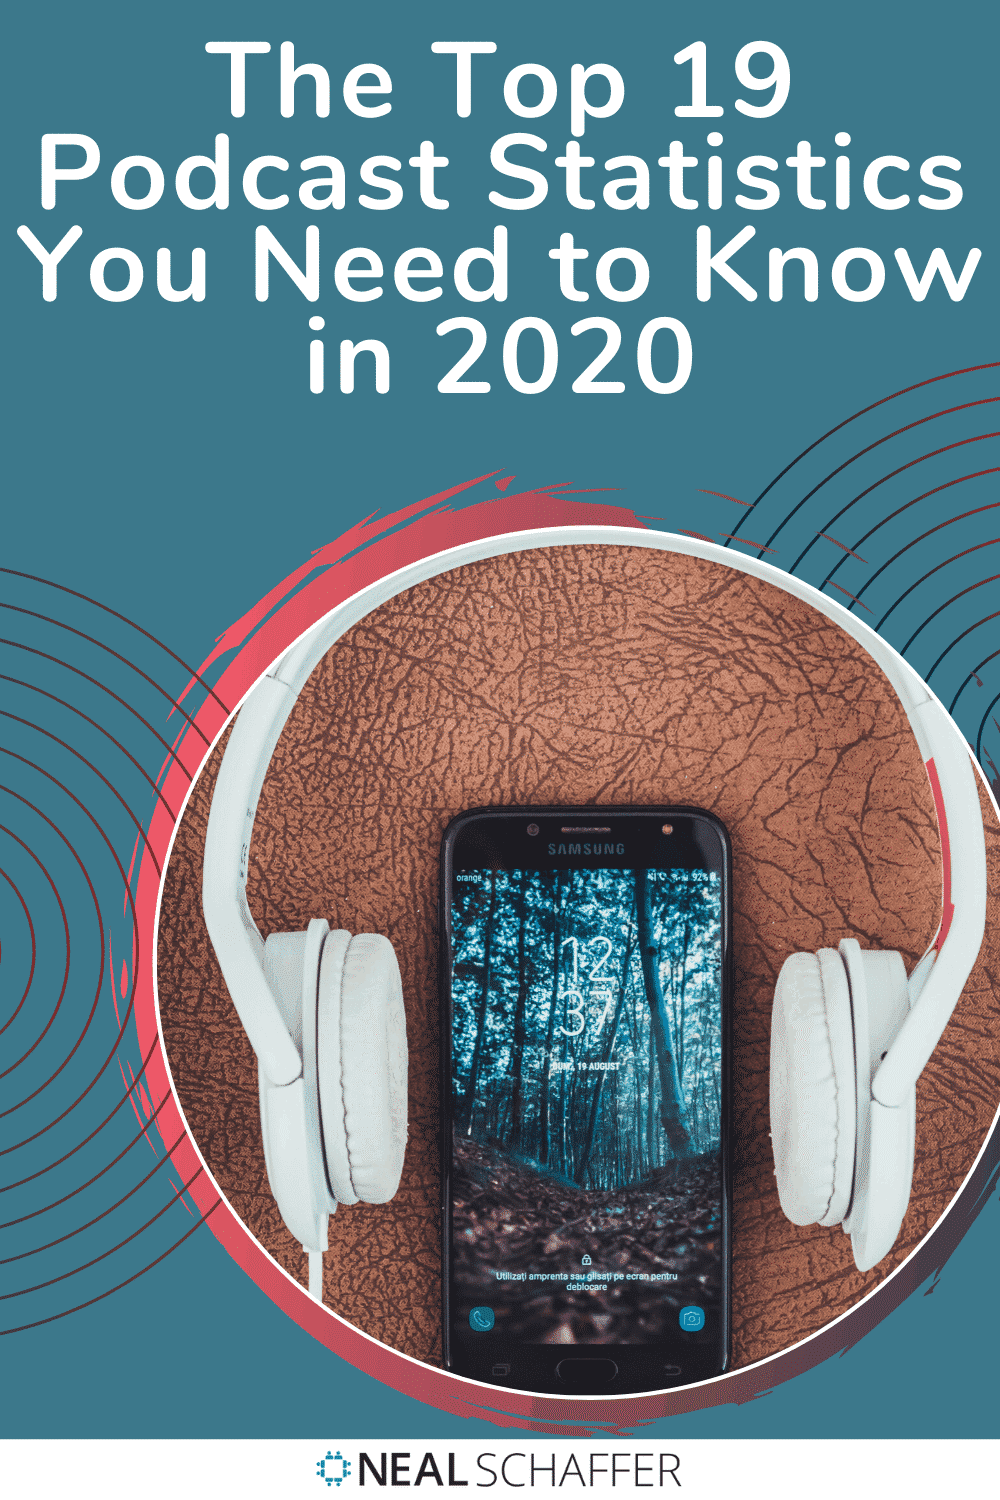 If you want to learn about the power of podcasting, you need to check out these convincing podcast statistics to better leverage podcasting for marketing.